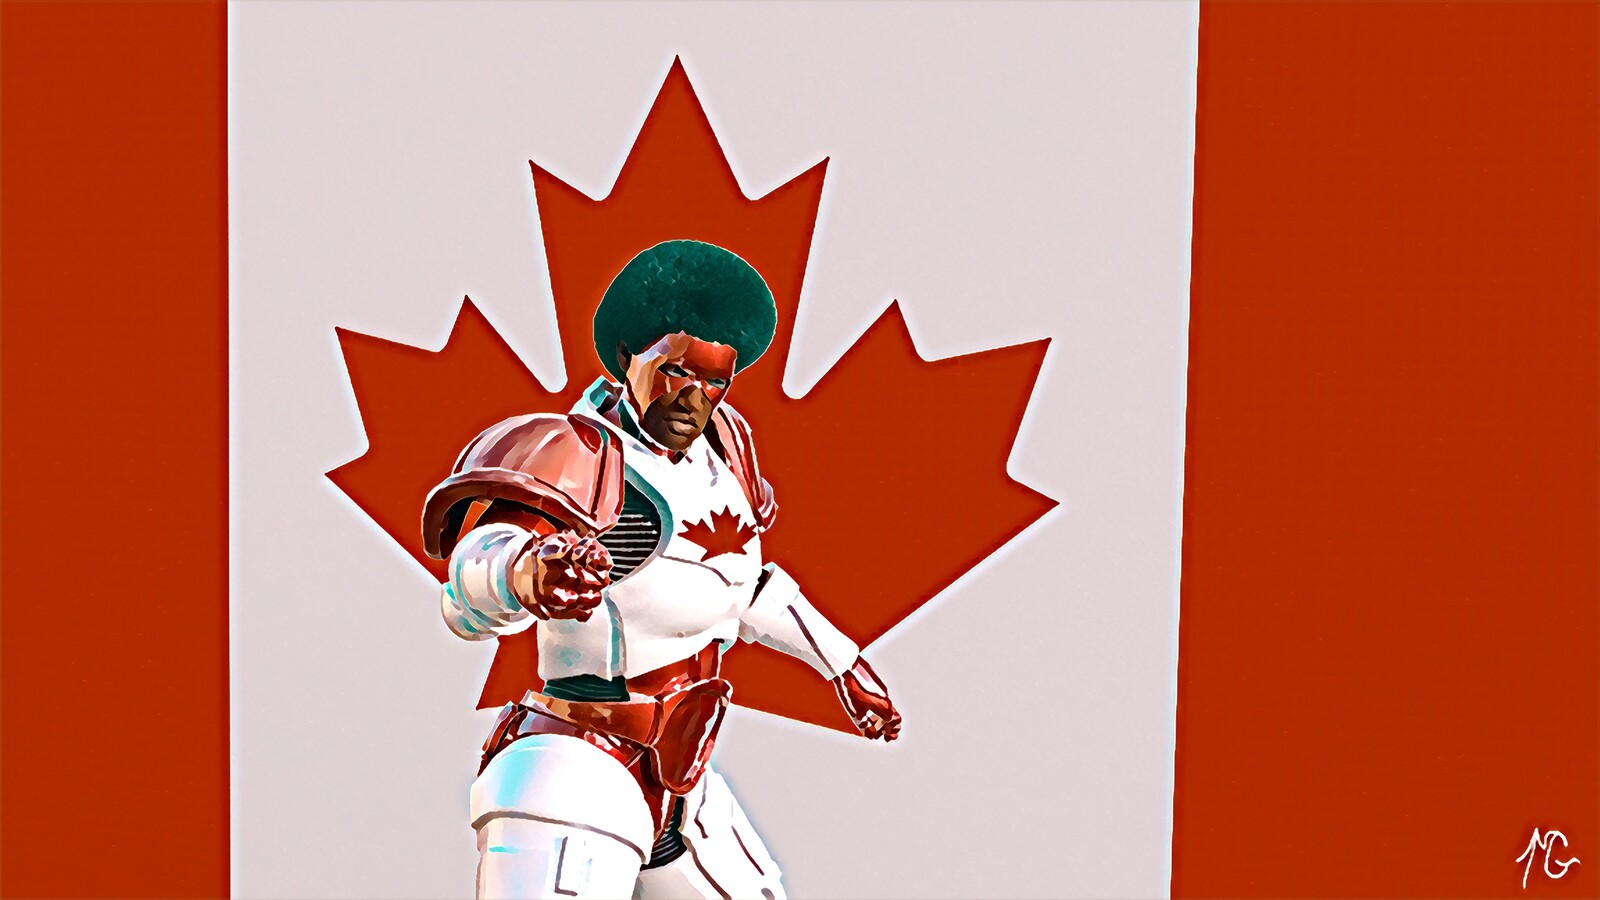 The Canadian Shield wants YOU!